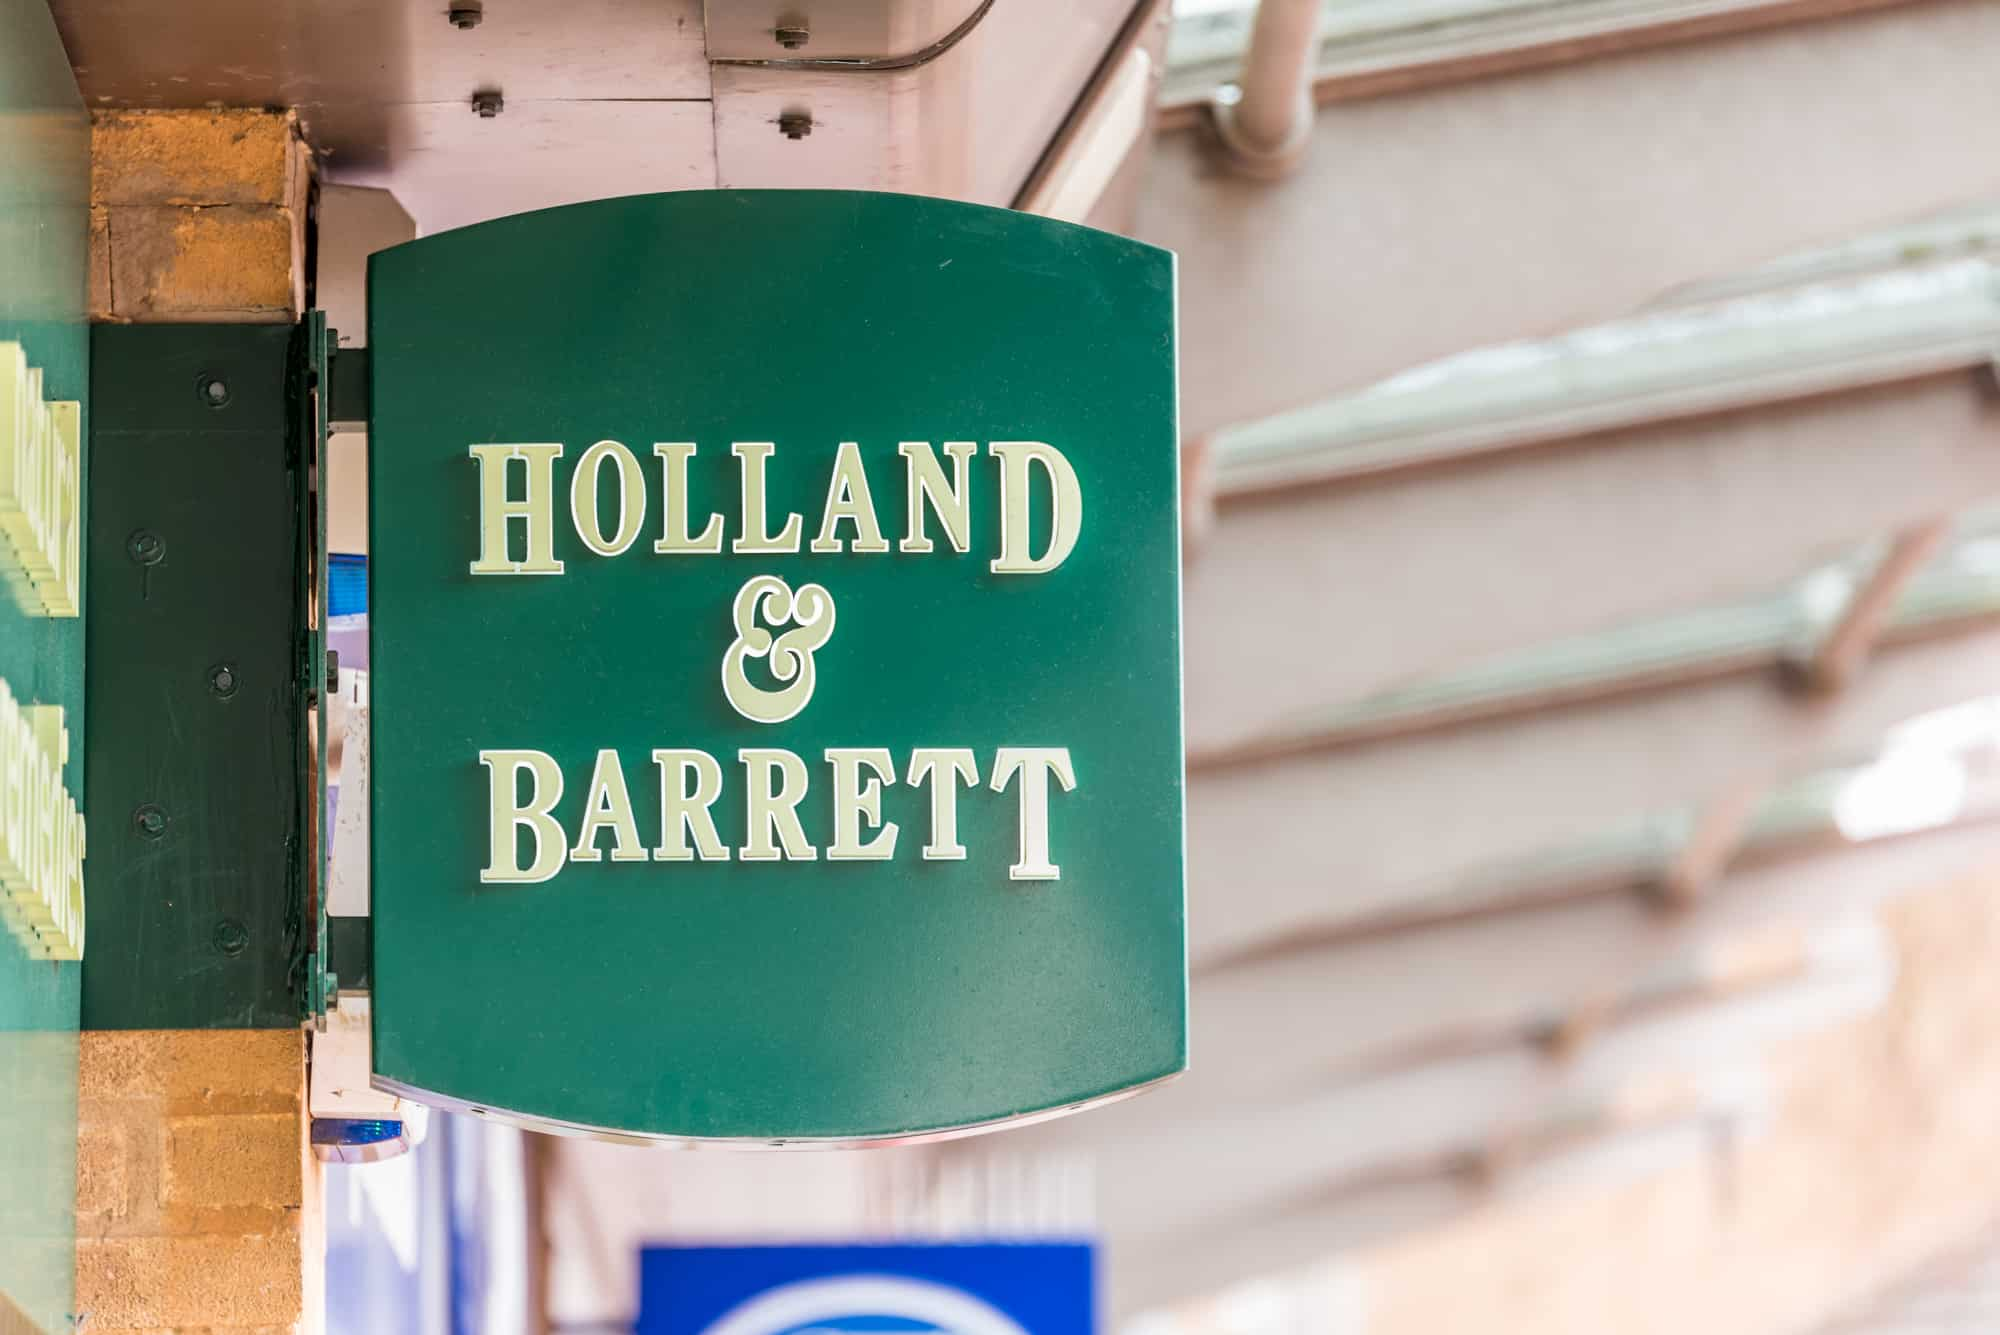 Move of the Week: New Holland & Barrett boss has big shoes to fill